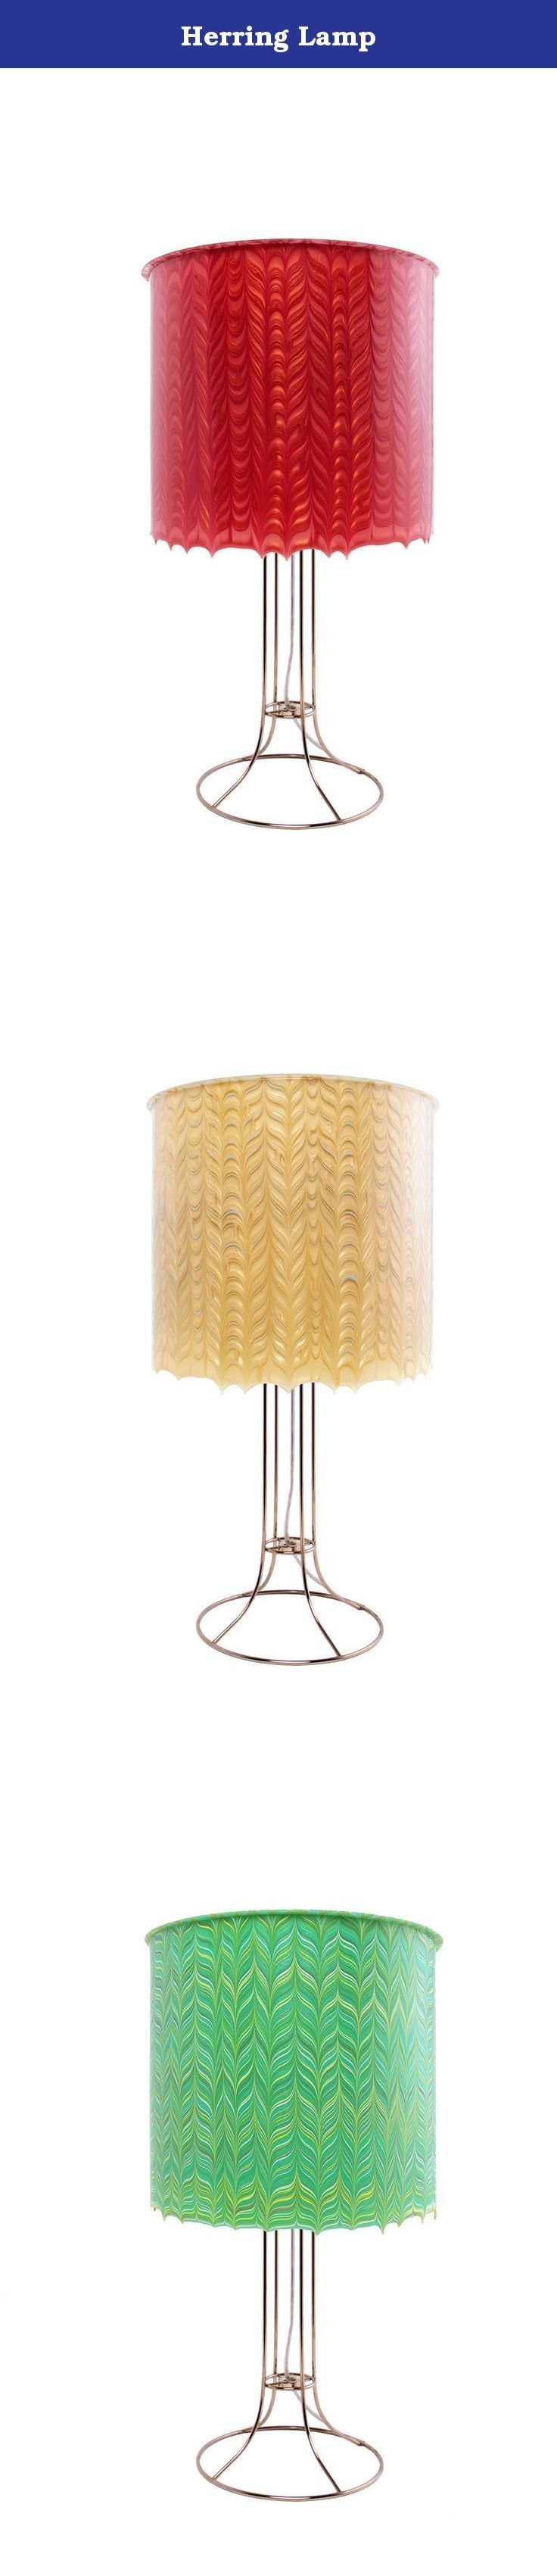 Herring Lamp. Timeless and distinctive; the skeleton of a fish, a woven fabric or the arrangement of bricks and boards... herringbone embodies timeless elegance and simplicity. Our techniques for layering color neutralize the sterile effect of compact fluorescent bulbs, instead emoting a light that is warm and inviting, making high efficiency bulbs the ideal and responsible choice. We have mastered a combination of elegance and efficiency.